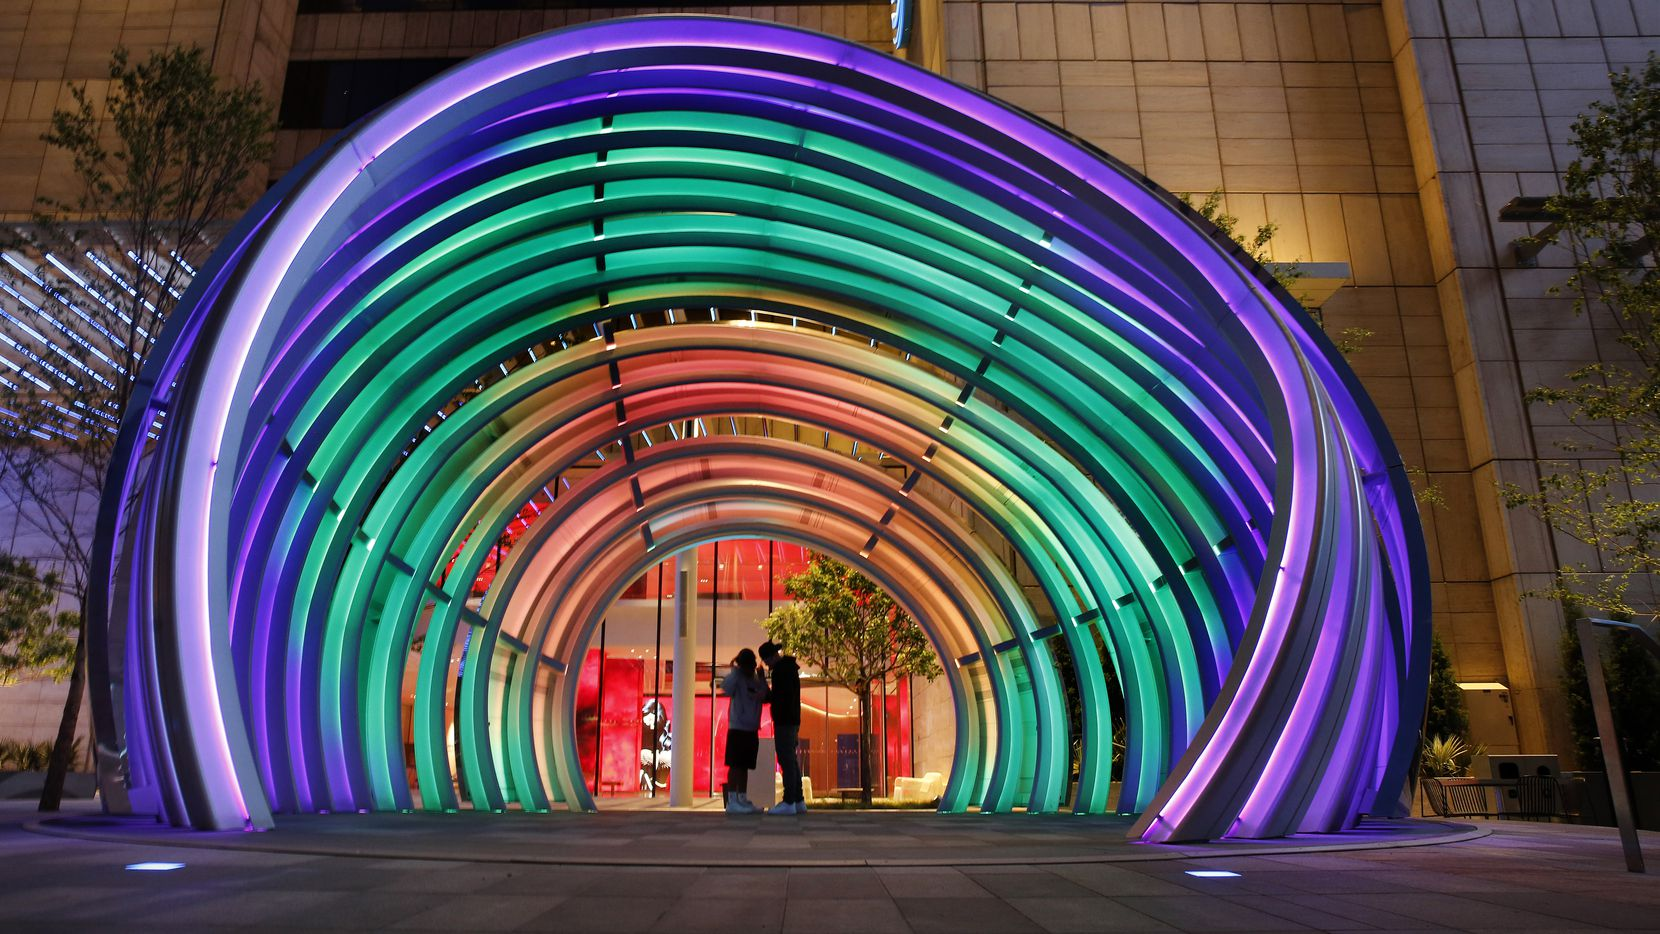 Kids hang out in the 30-foot tall LED-lit Globe in the AT&T Discovery District. The art piece will serve as a stage for the new outdoor concert series in the area.